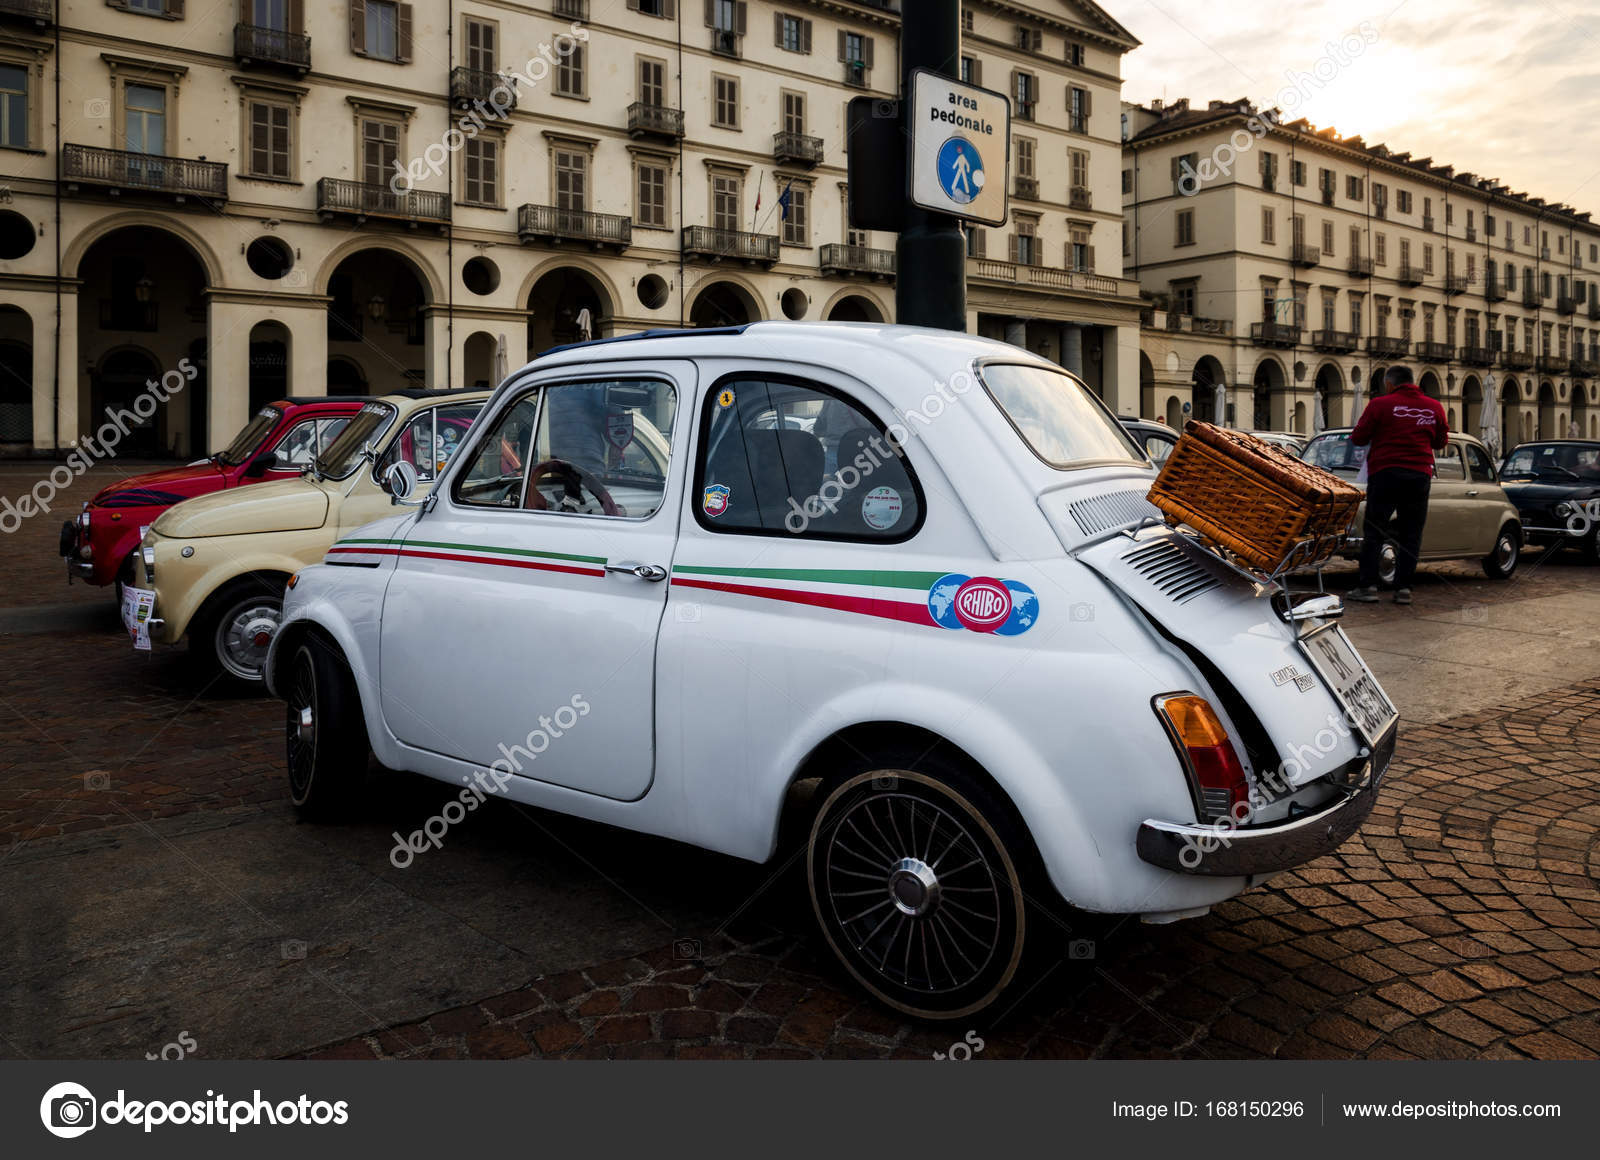 fiat 500 oldtimer in turijn redactionele stockfoto. Black Bedroom Furniture Sets. Home Design Ideas